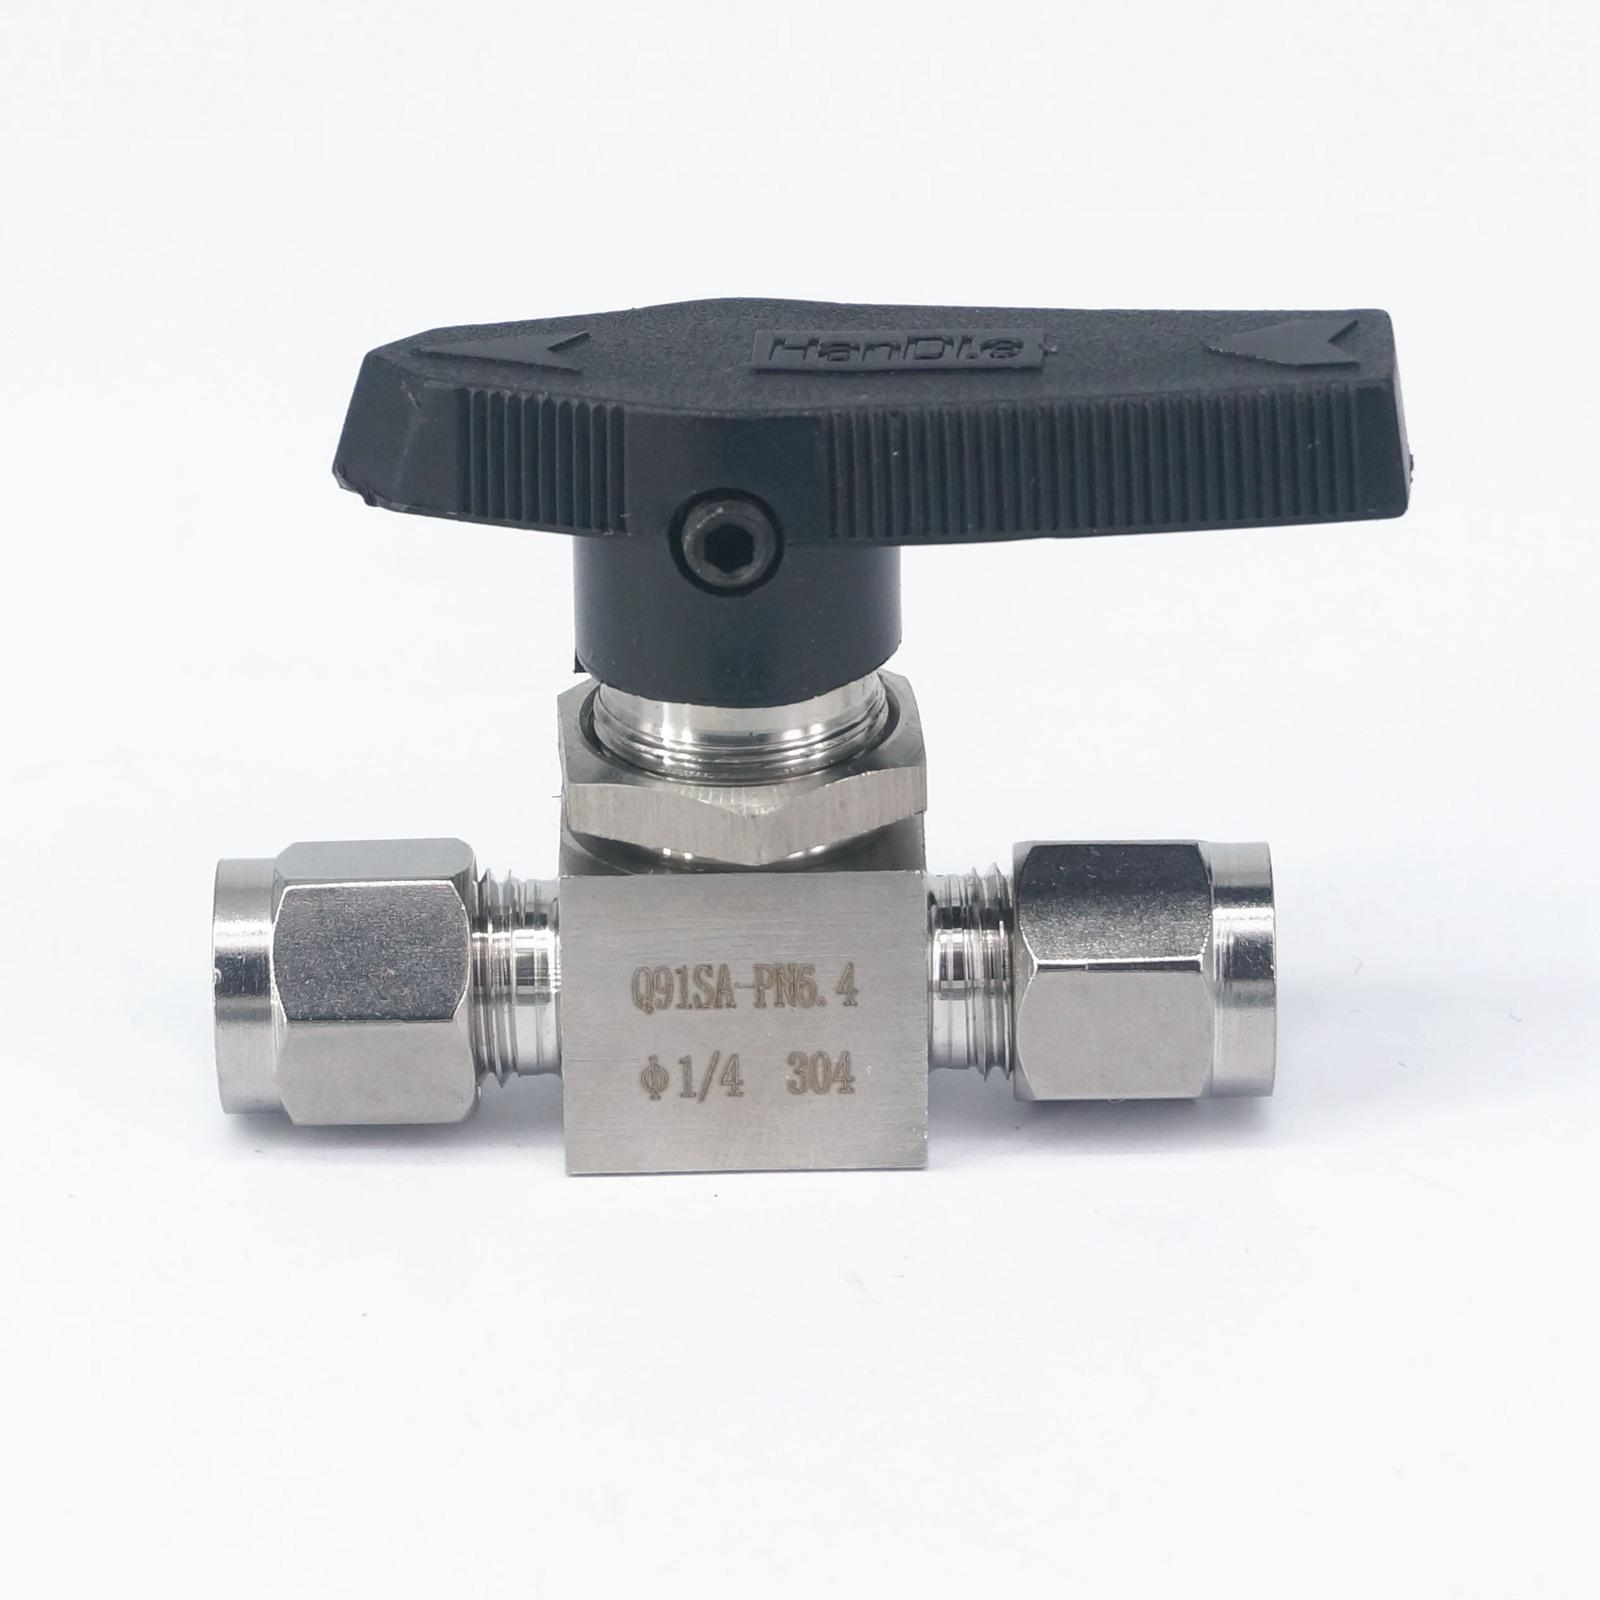 304 Stainless Steel Compression fitting shut off <font><b>Ball</b></font> <font><b>Valve</b></font> 915 PSI Q91SA PN 6.<font><b>4</b></font> Fit For <font><b>1</b></font>/<font><b>4</b></font>